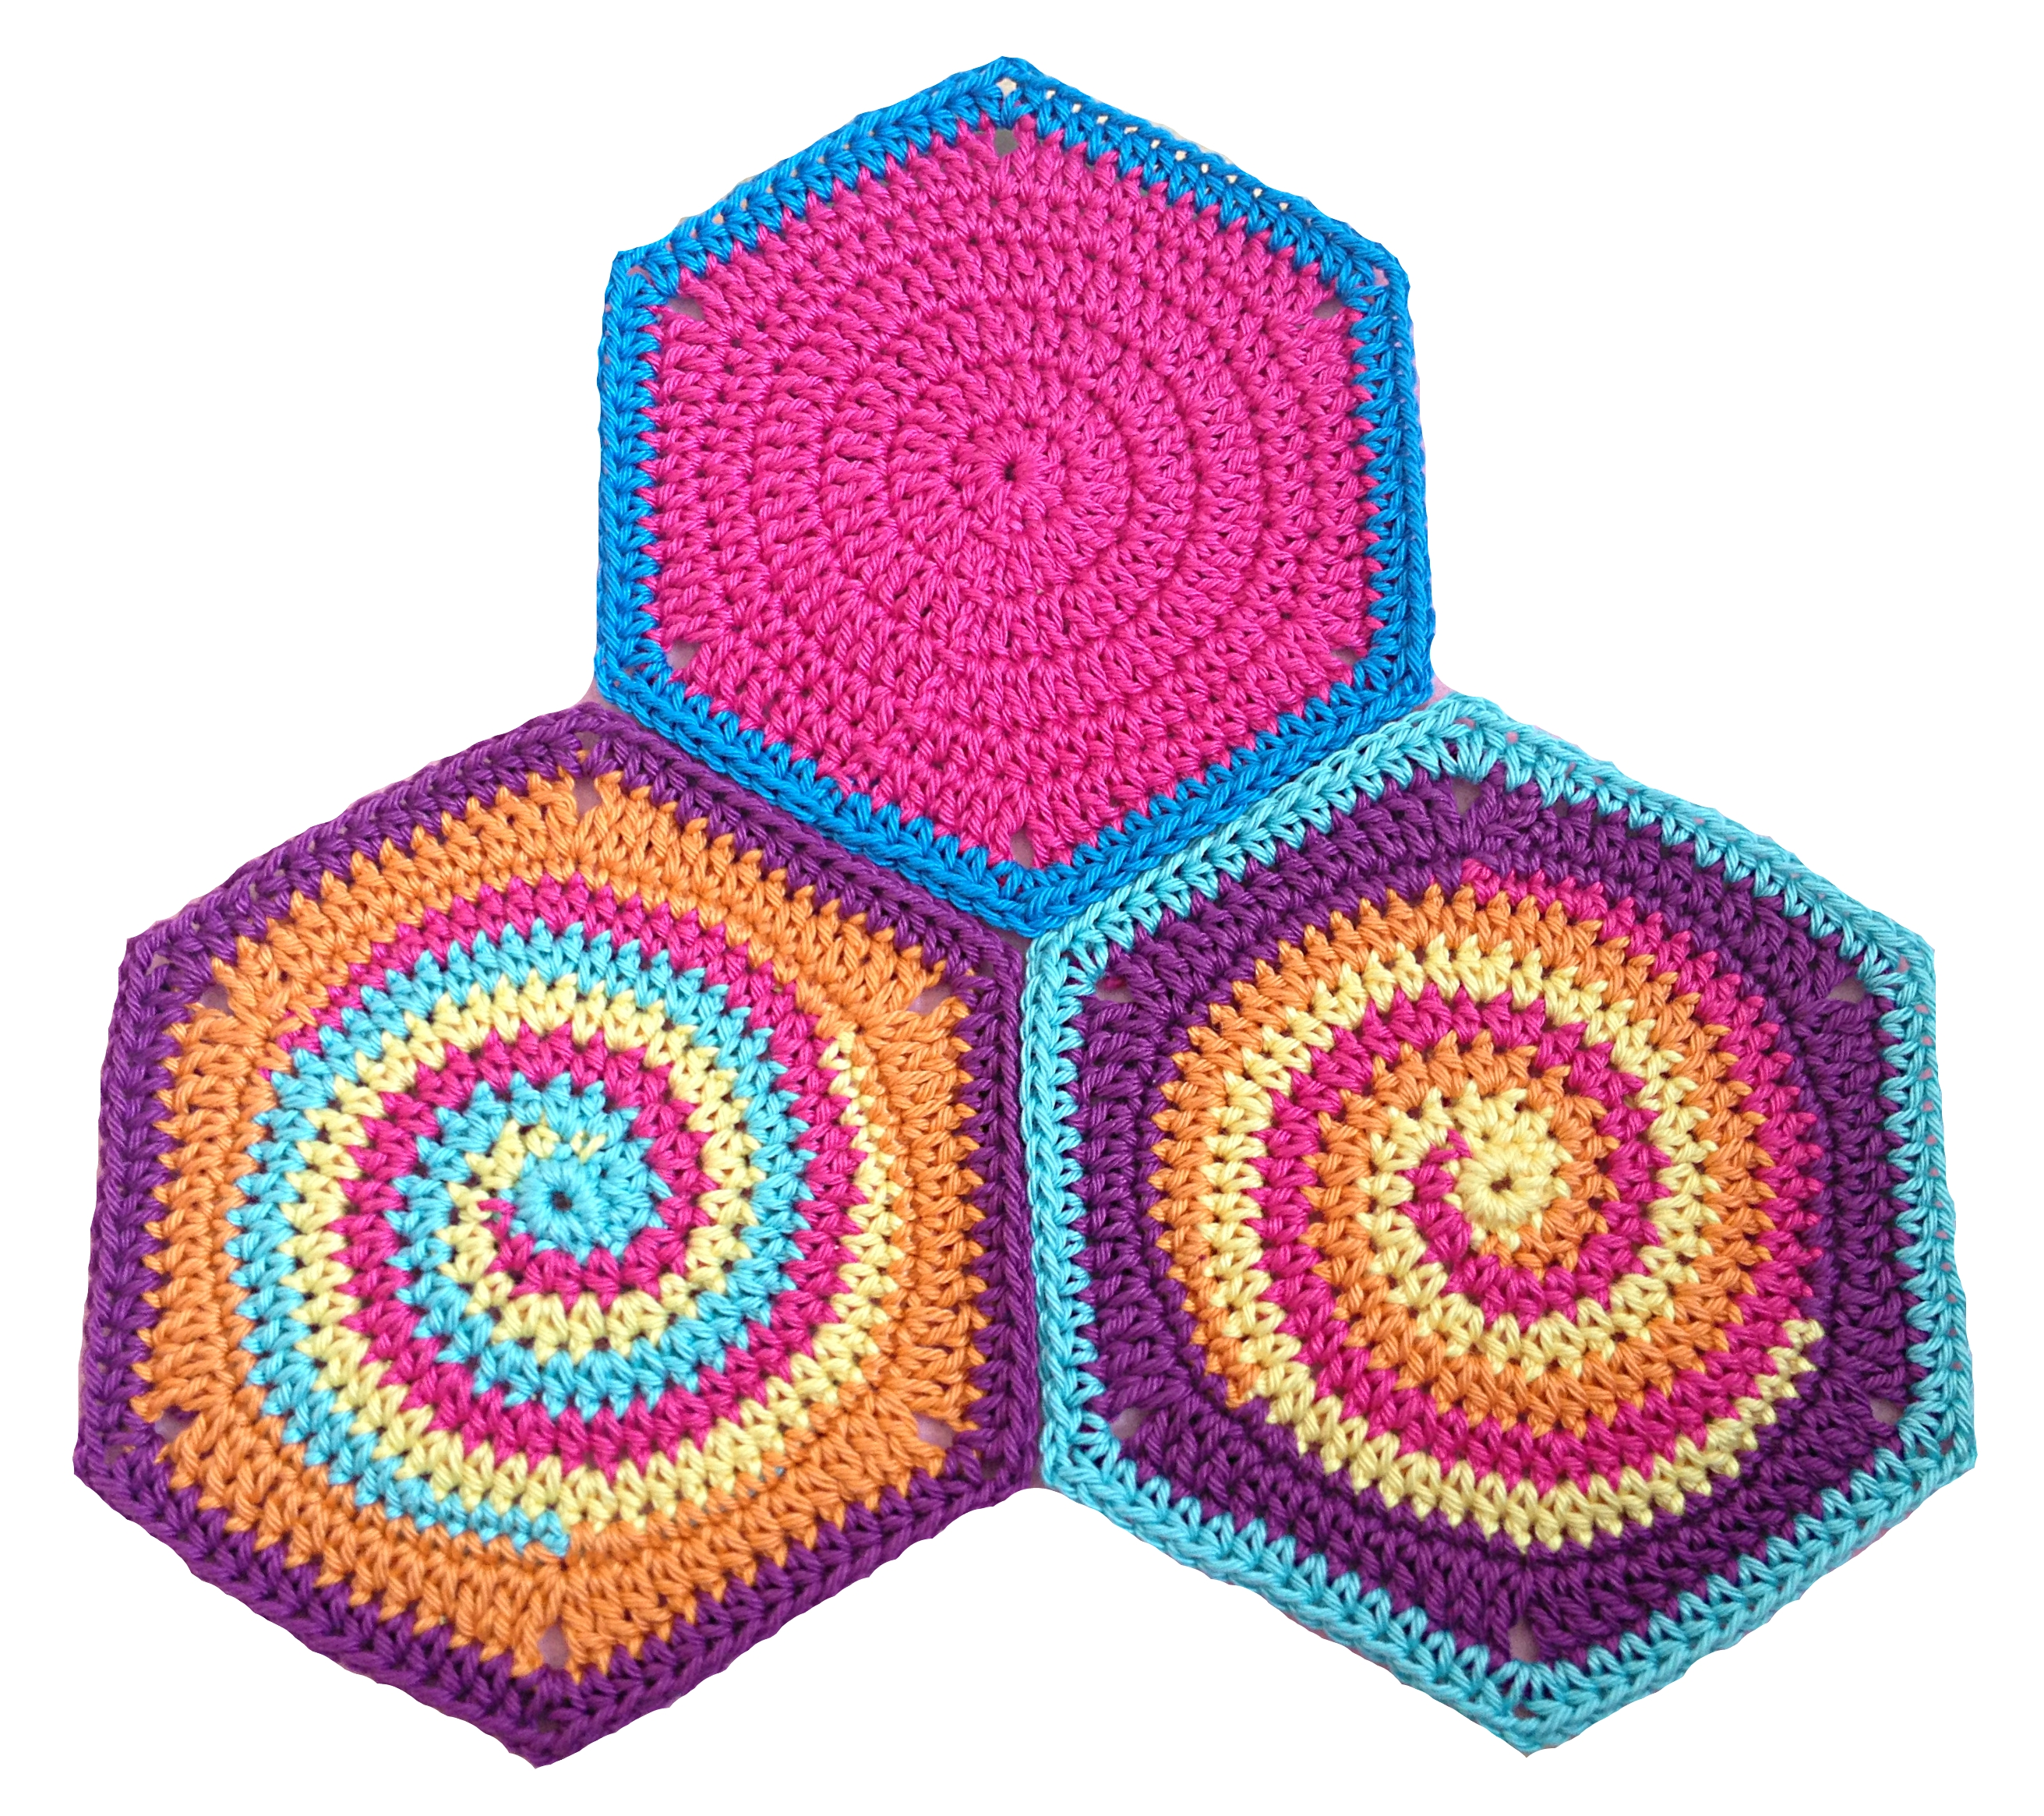 Granny Square Hexagon Twistysix Häkelanleitung Pdf